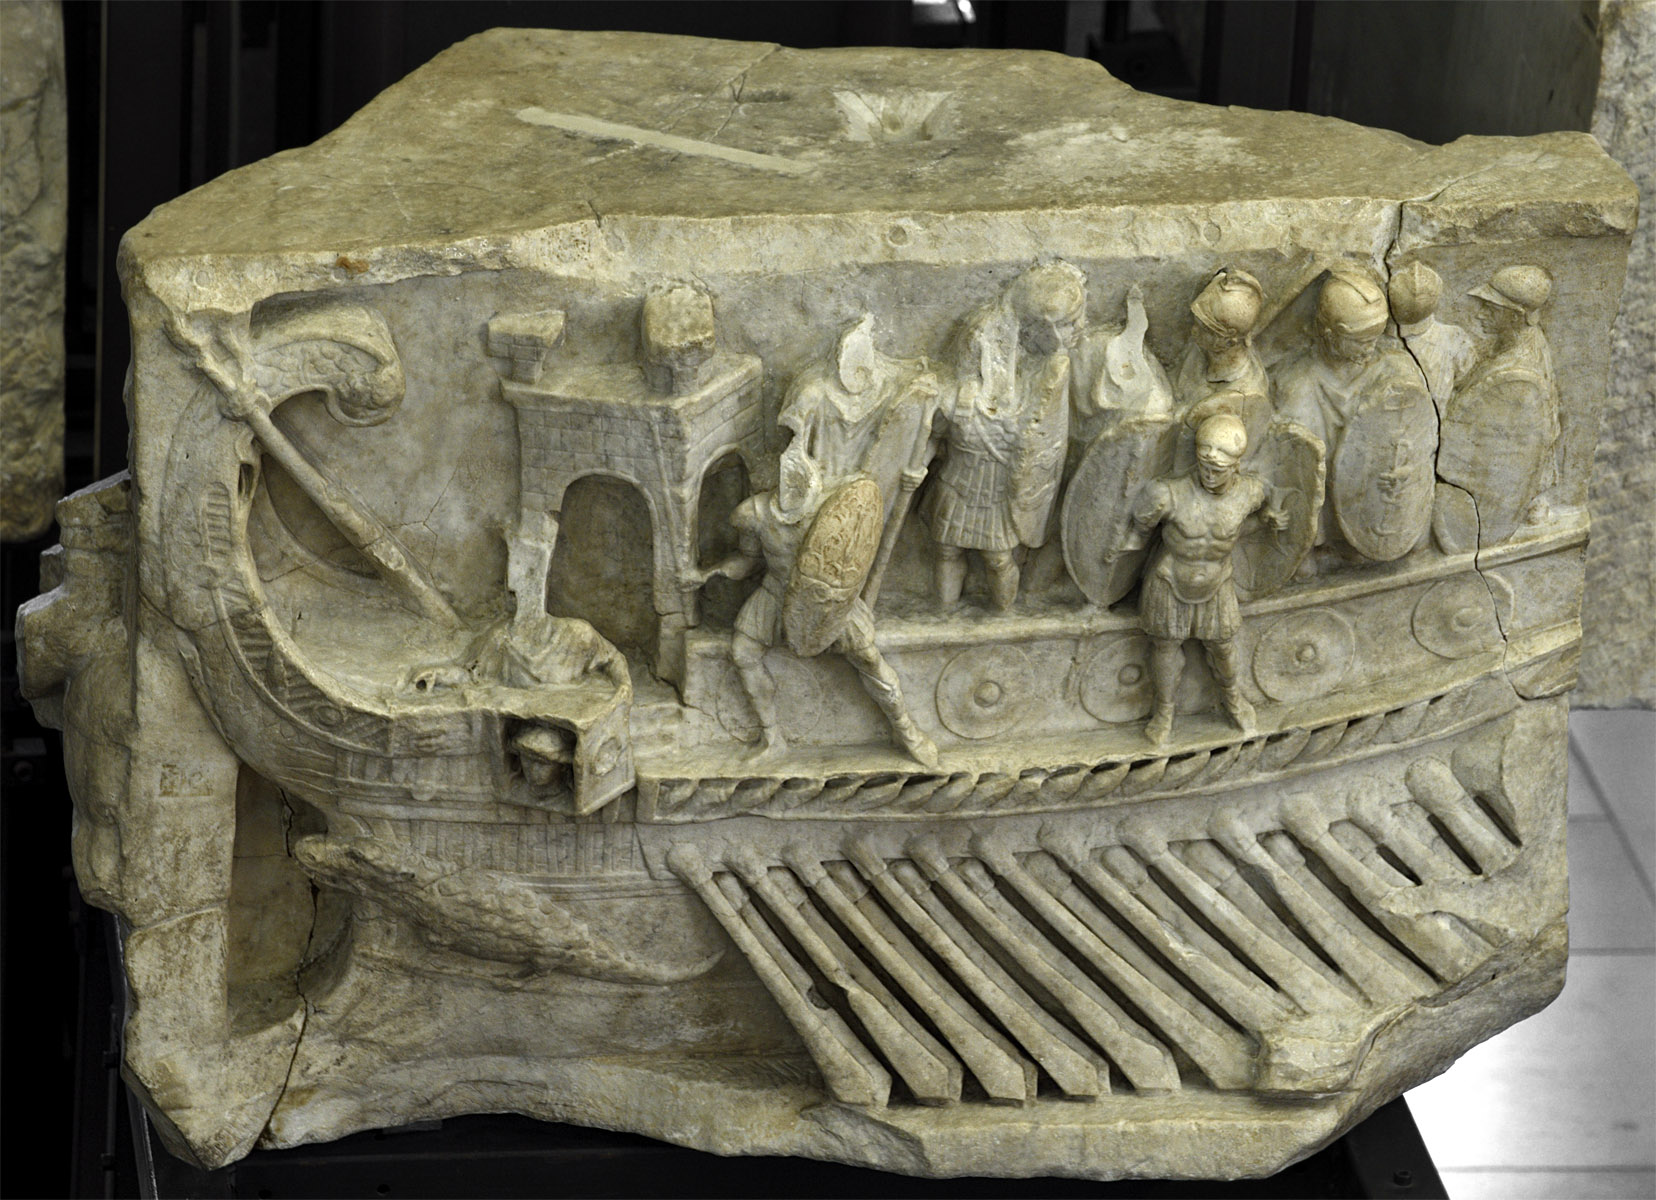 A part of relief depicting a roman warship. Marble. Last third of the 1st century BCE. Inv. No. 31680. Rome, Vatican Museums, Gregorian Profane Museum